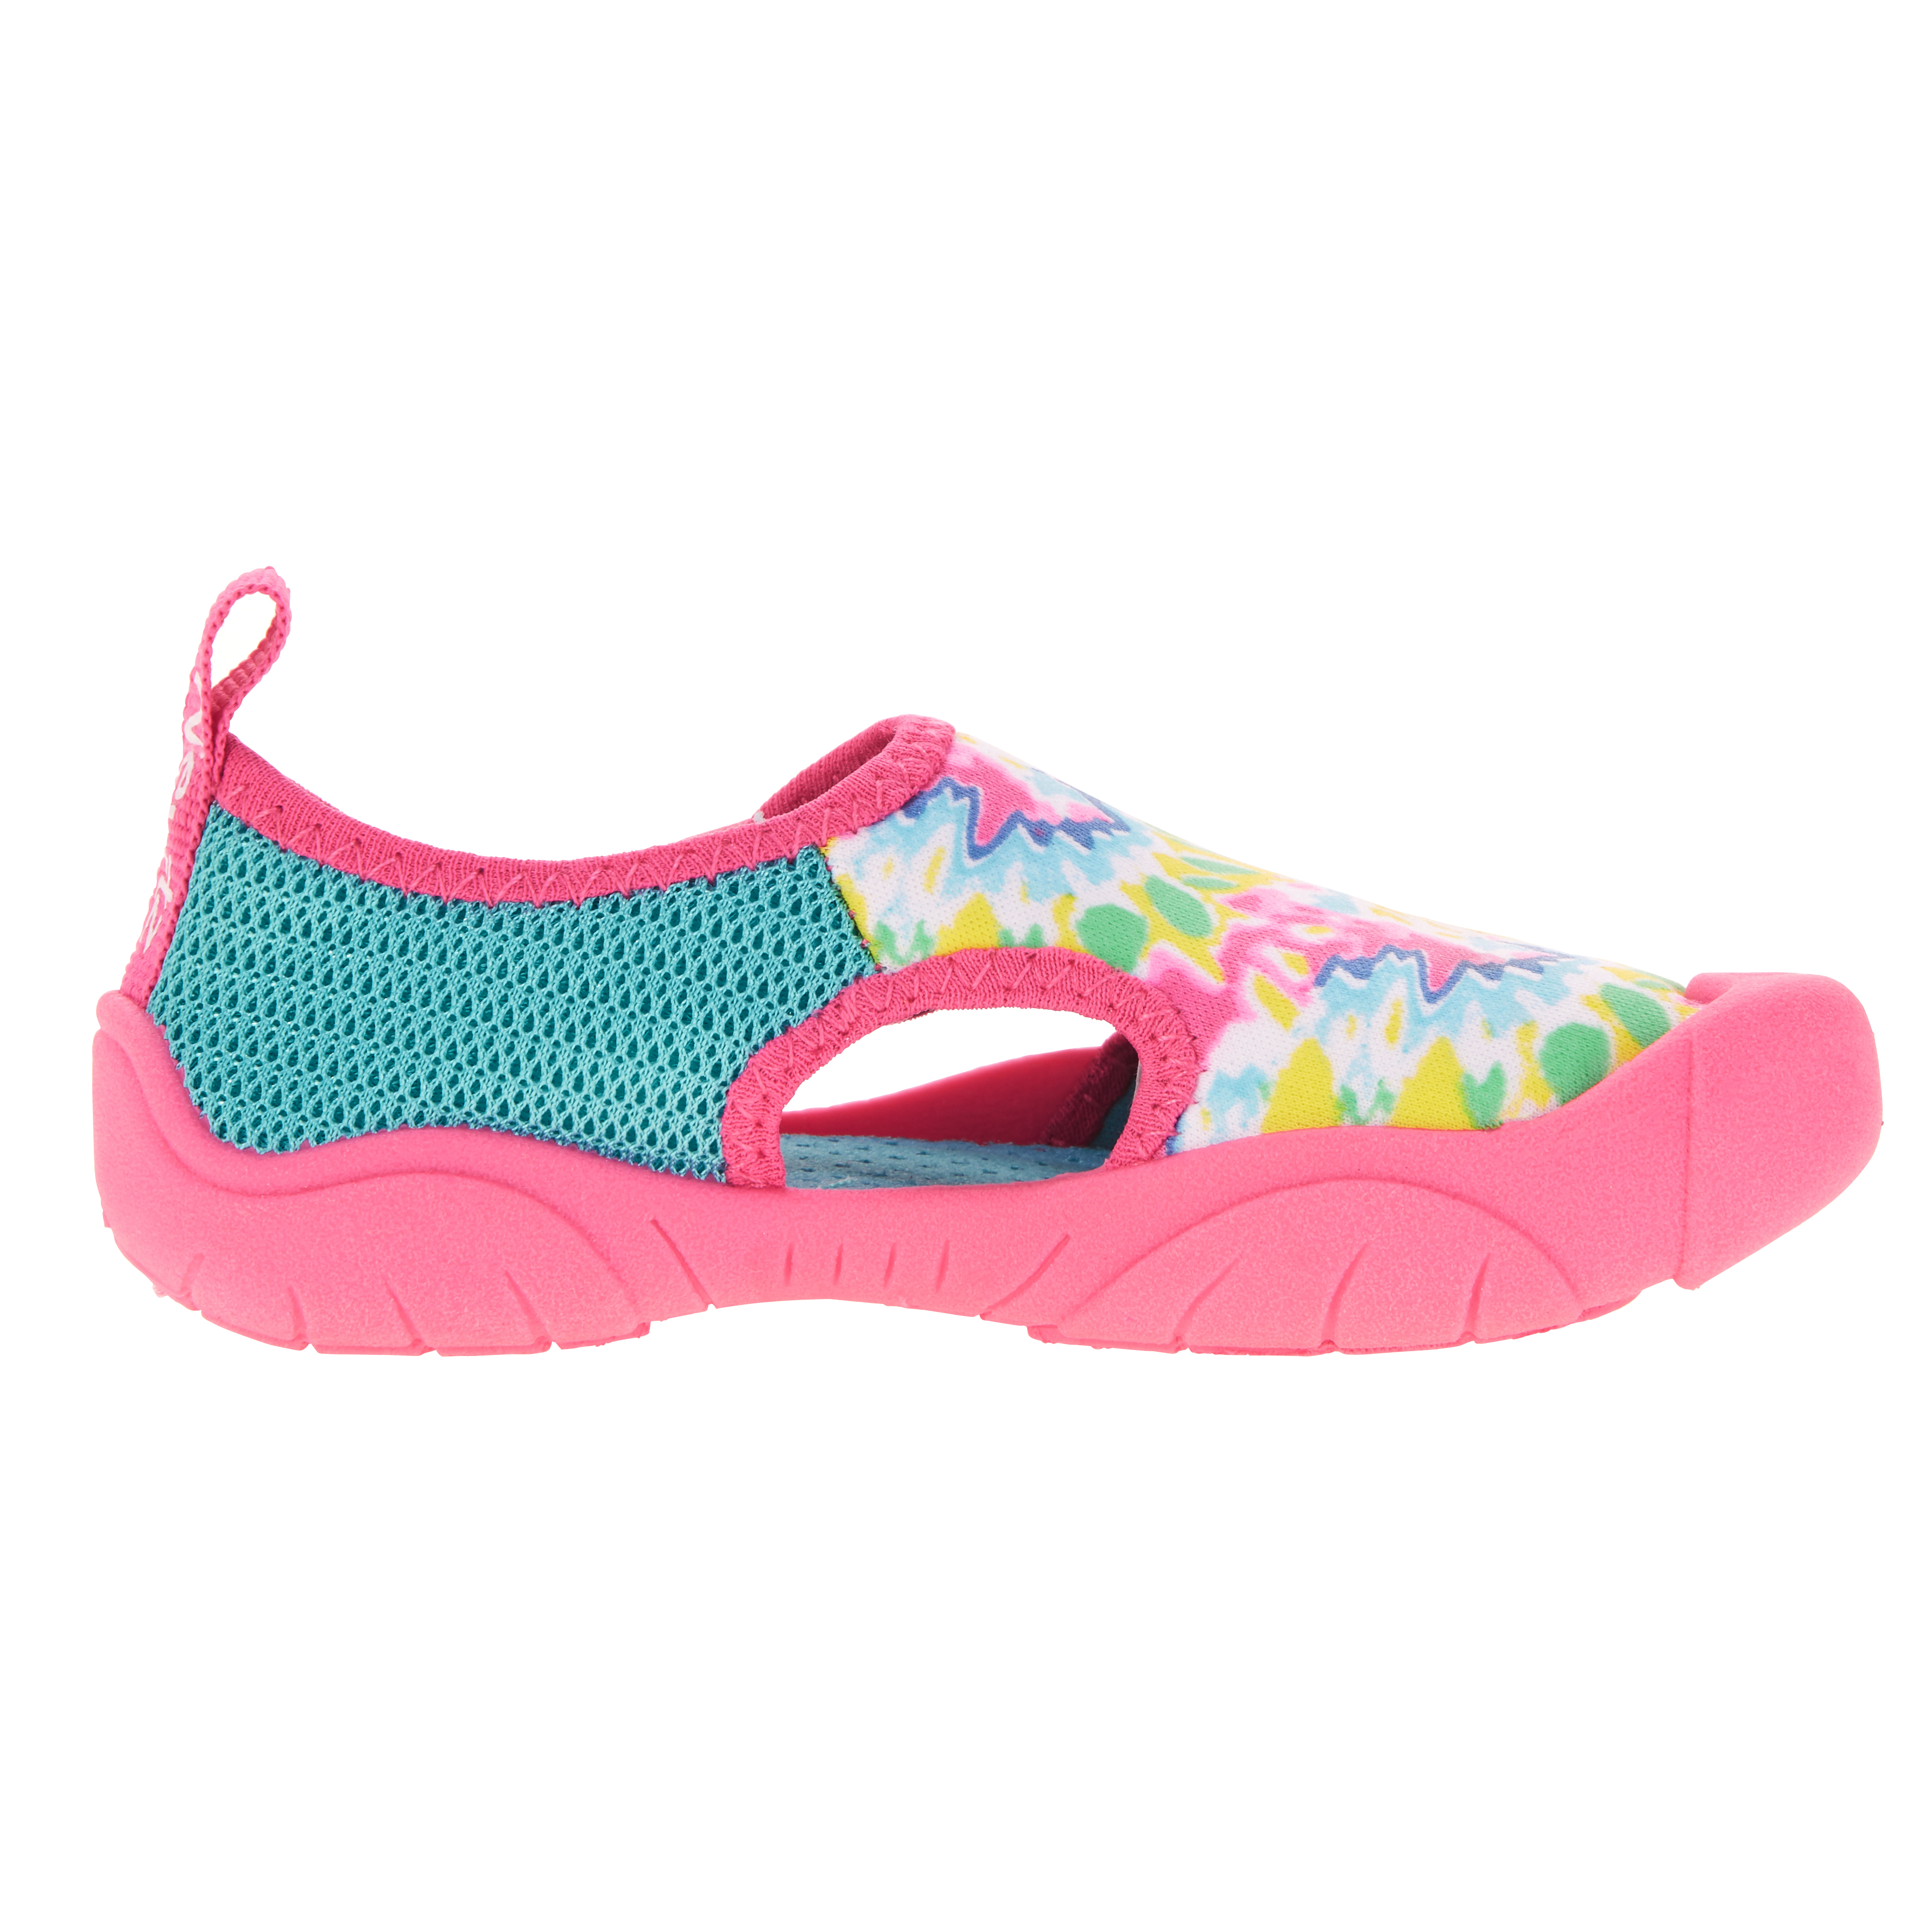 Newtz Toddler Girl S Beach Water Shoe Walmart Com